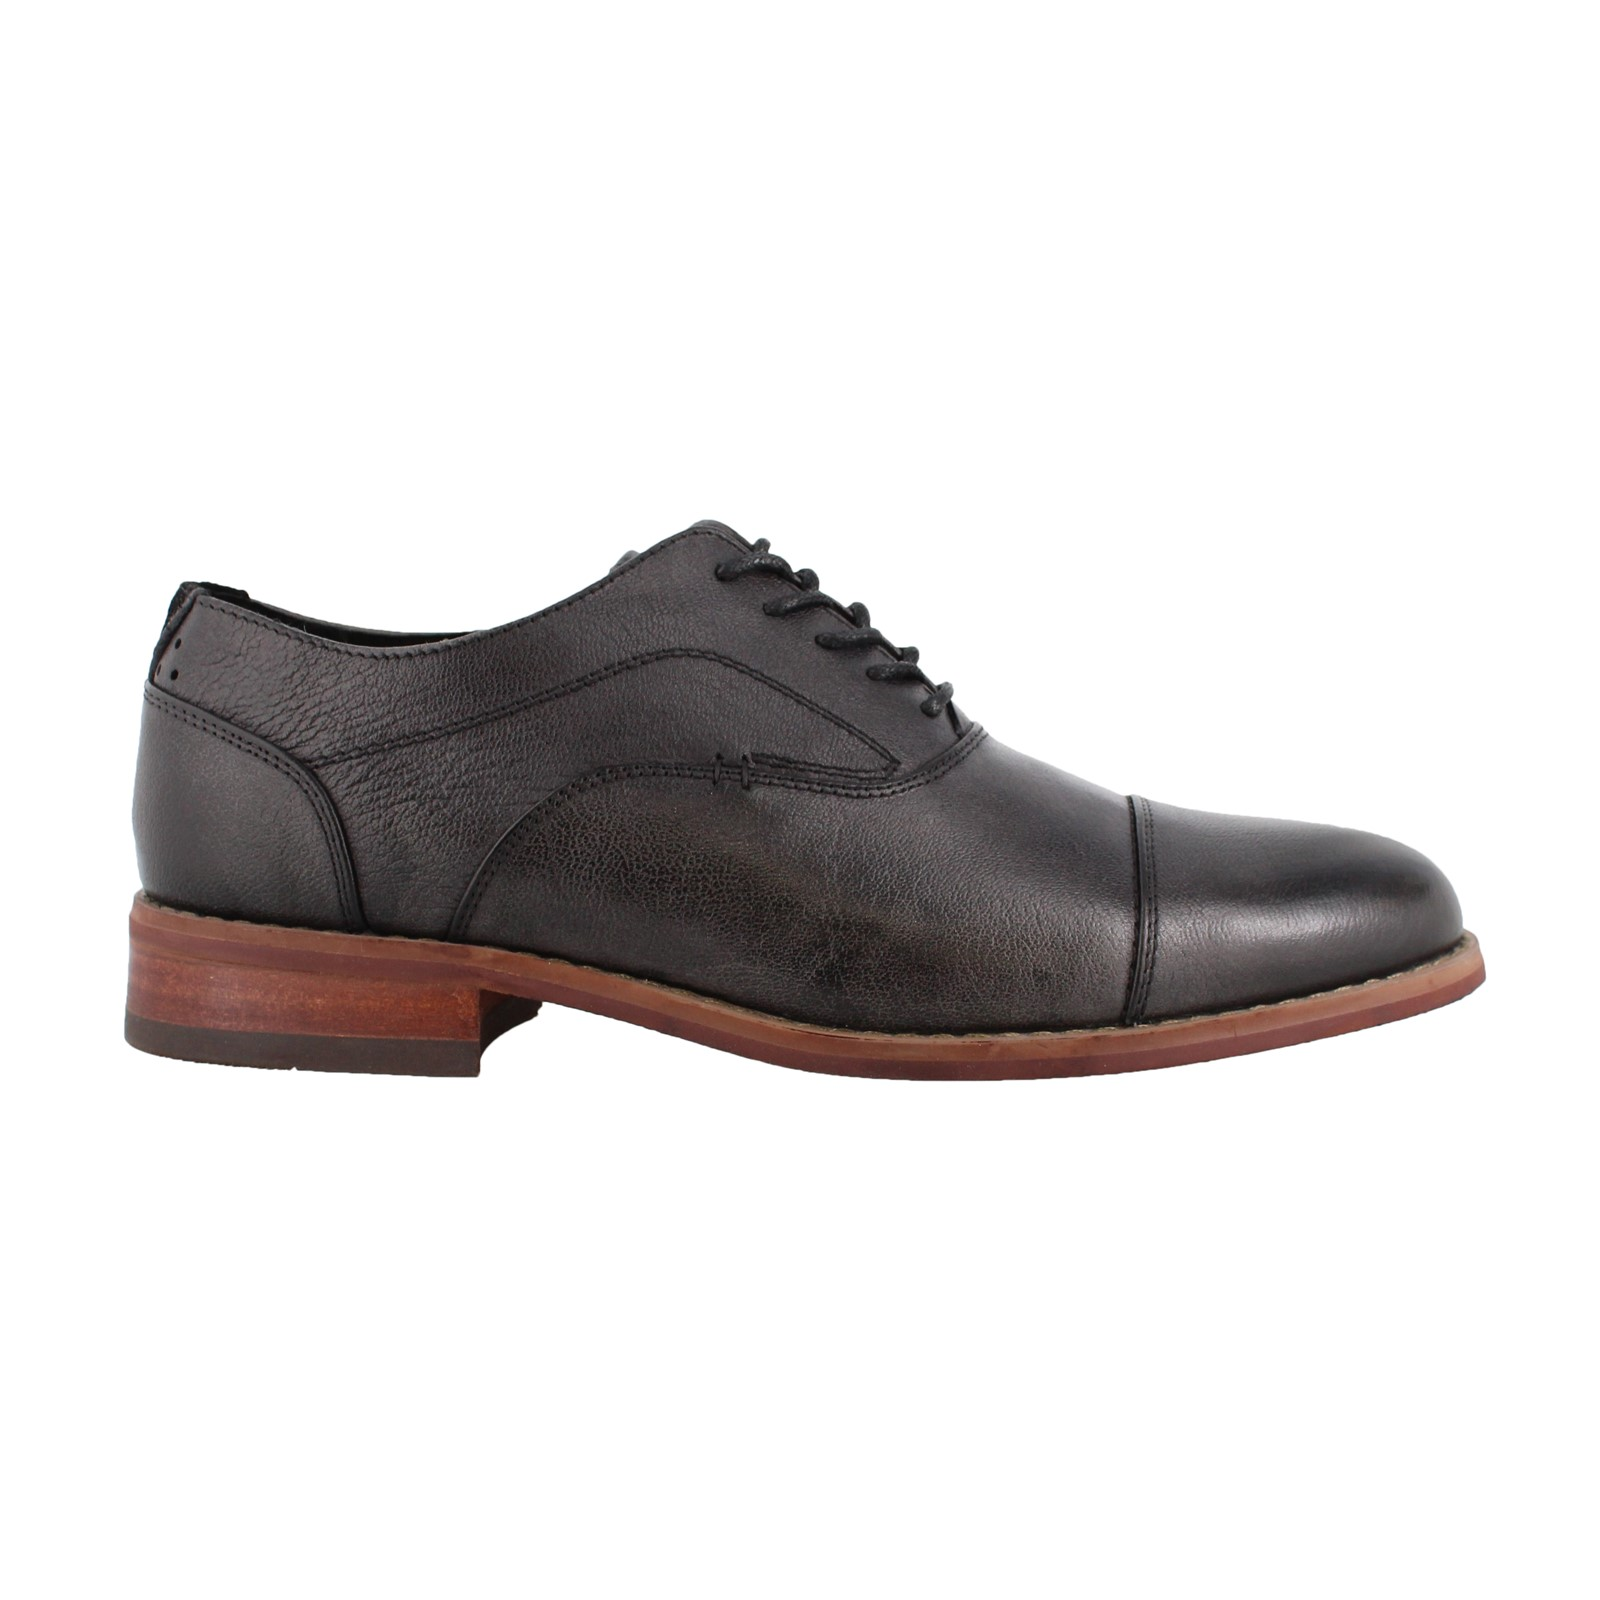 Men's Florsheim, Rockit Cap Toe Lace up Oxfords